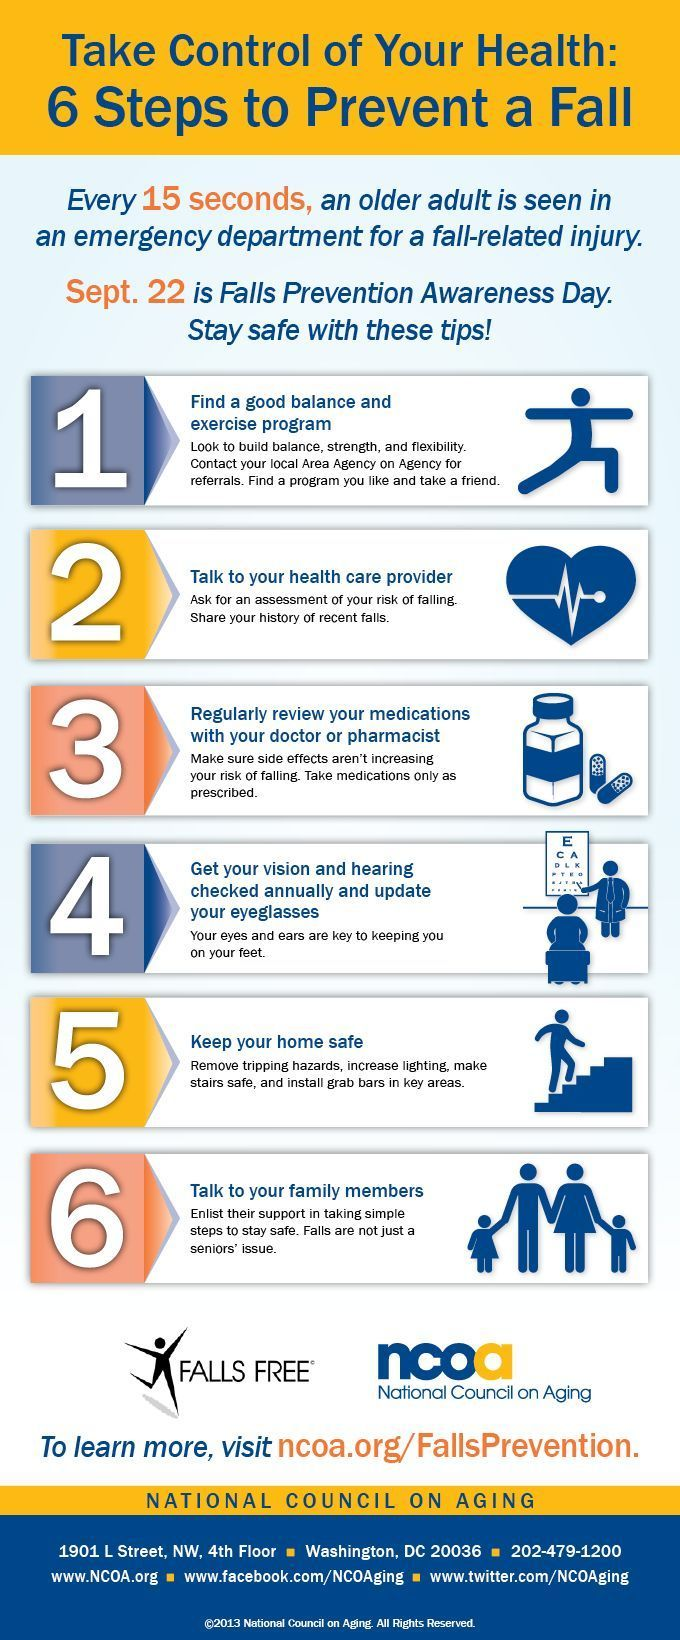 Every 15 seconds, and older adult is seen in an emergency department for a fall-related injury. Be safe with these tips!